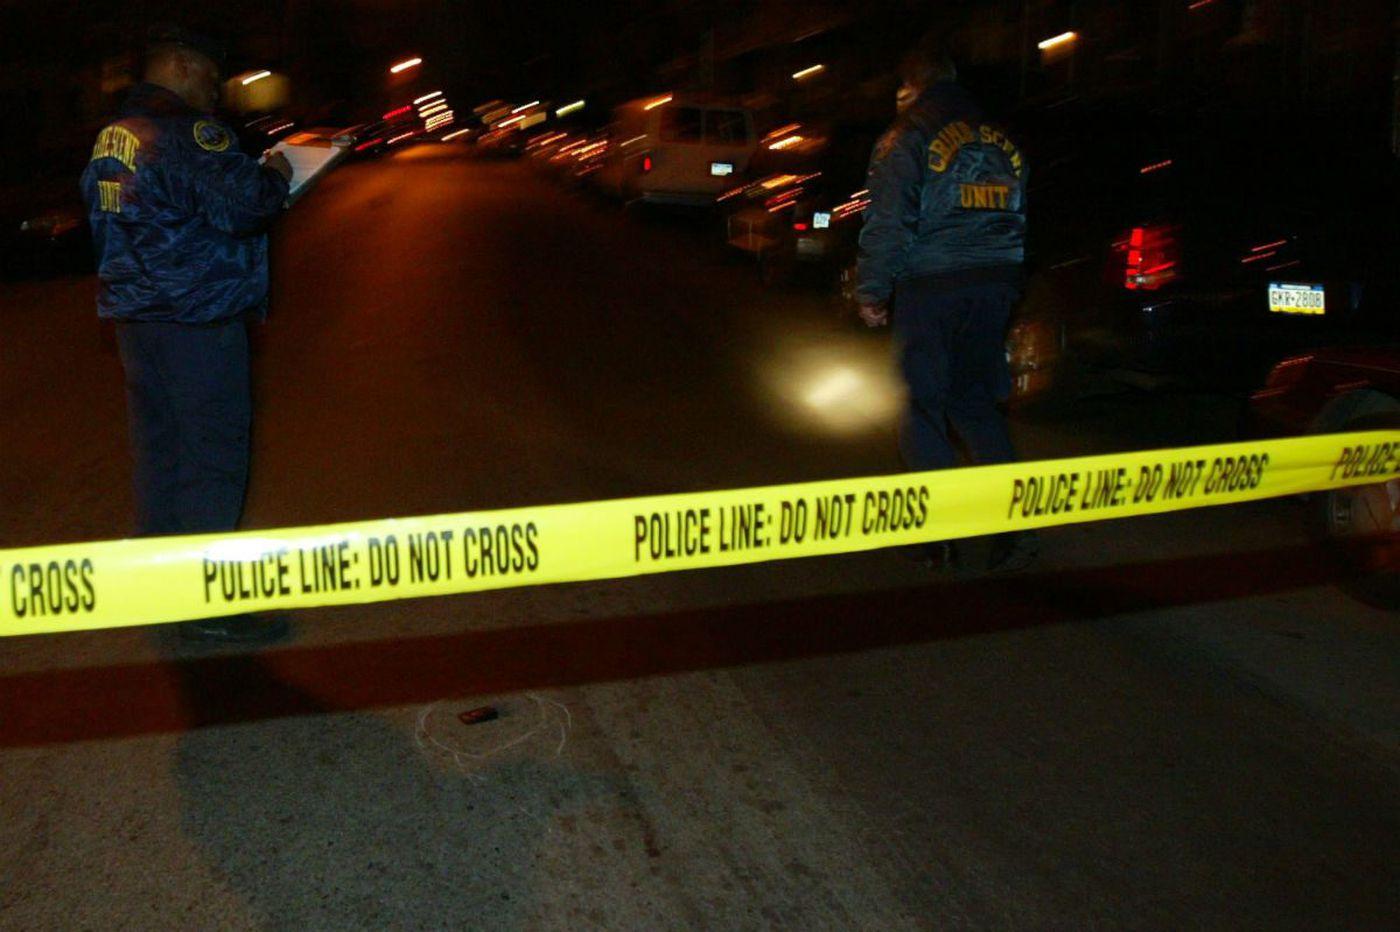 4 wounded in drive-by shooting in Fairhill